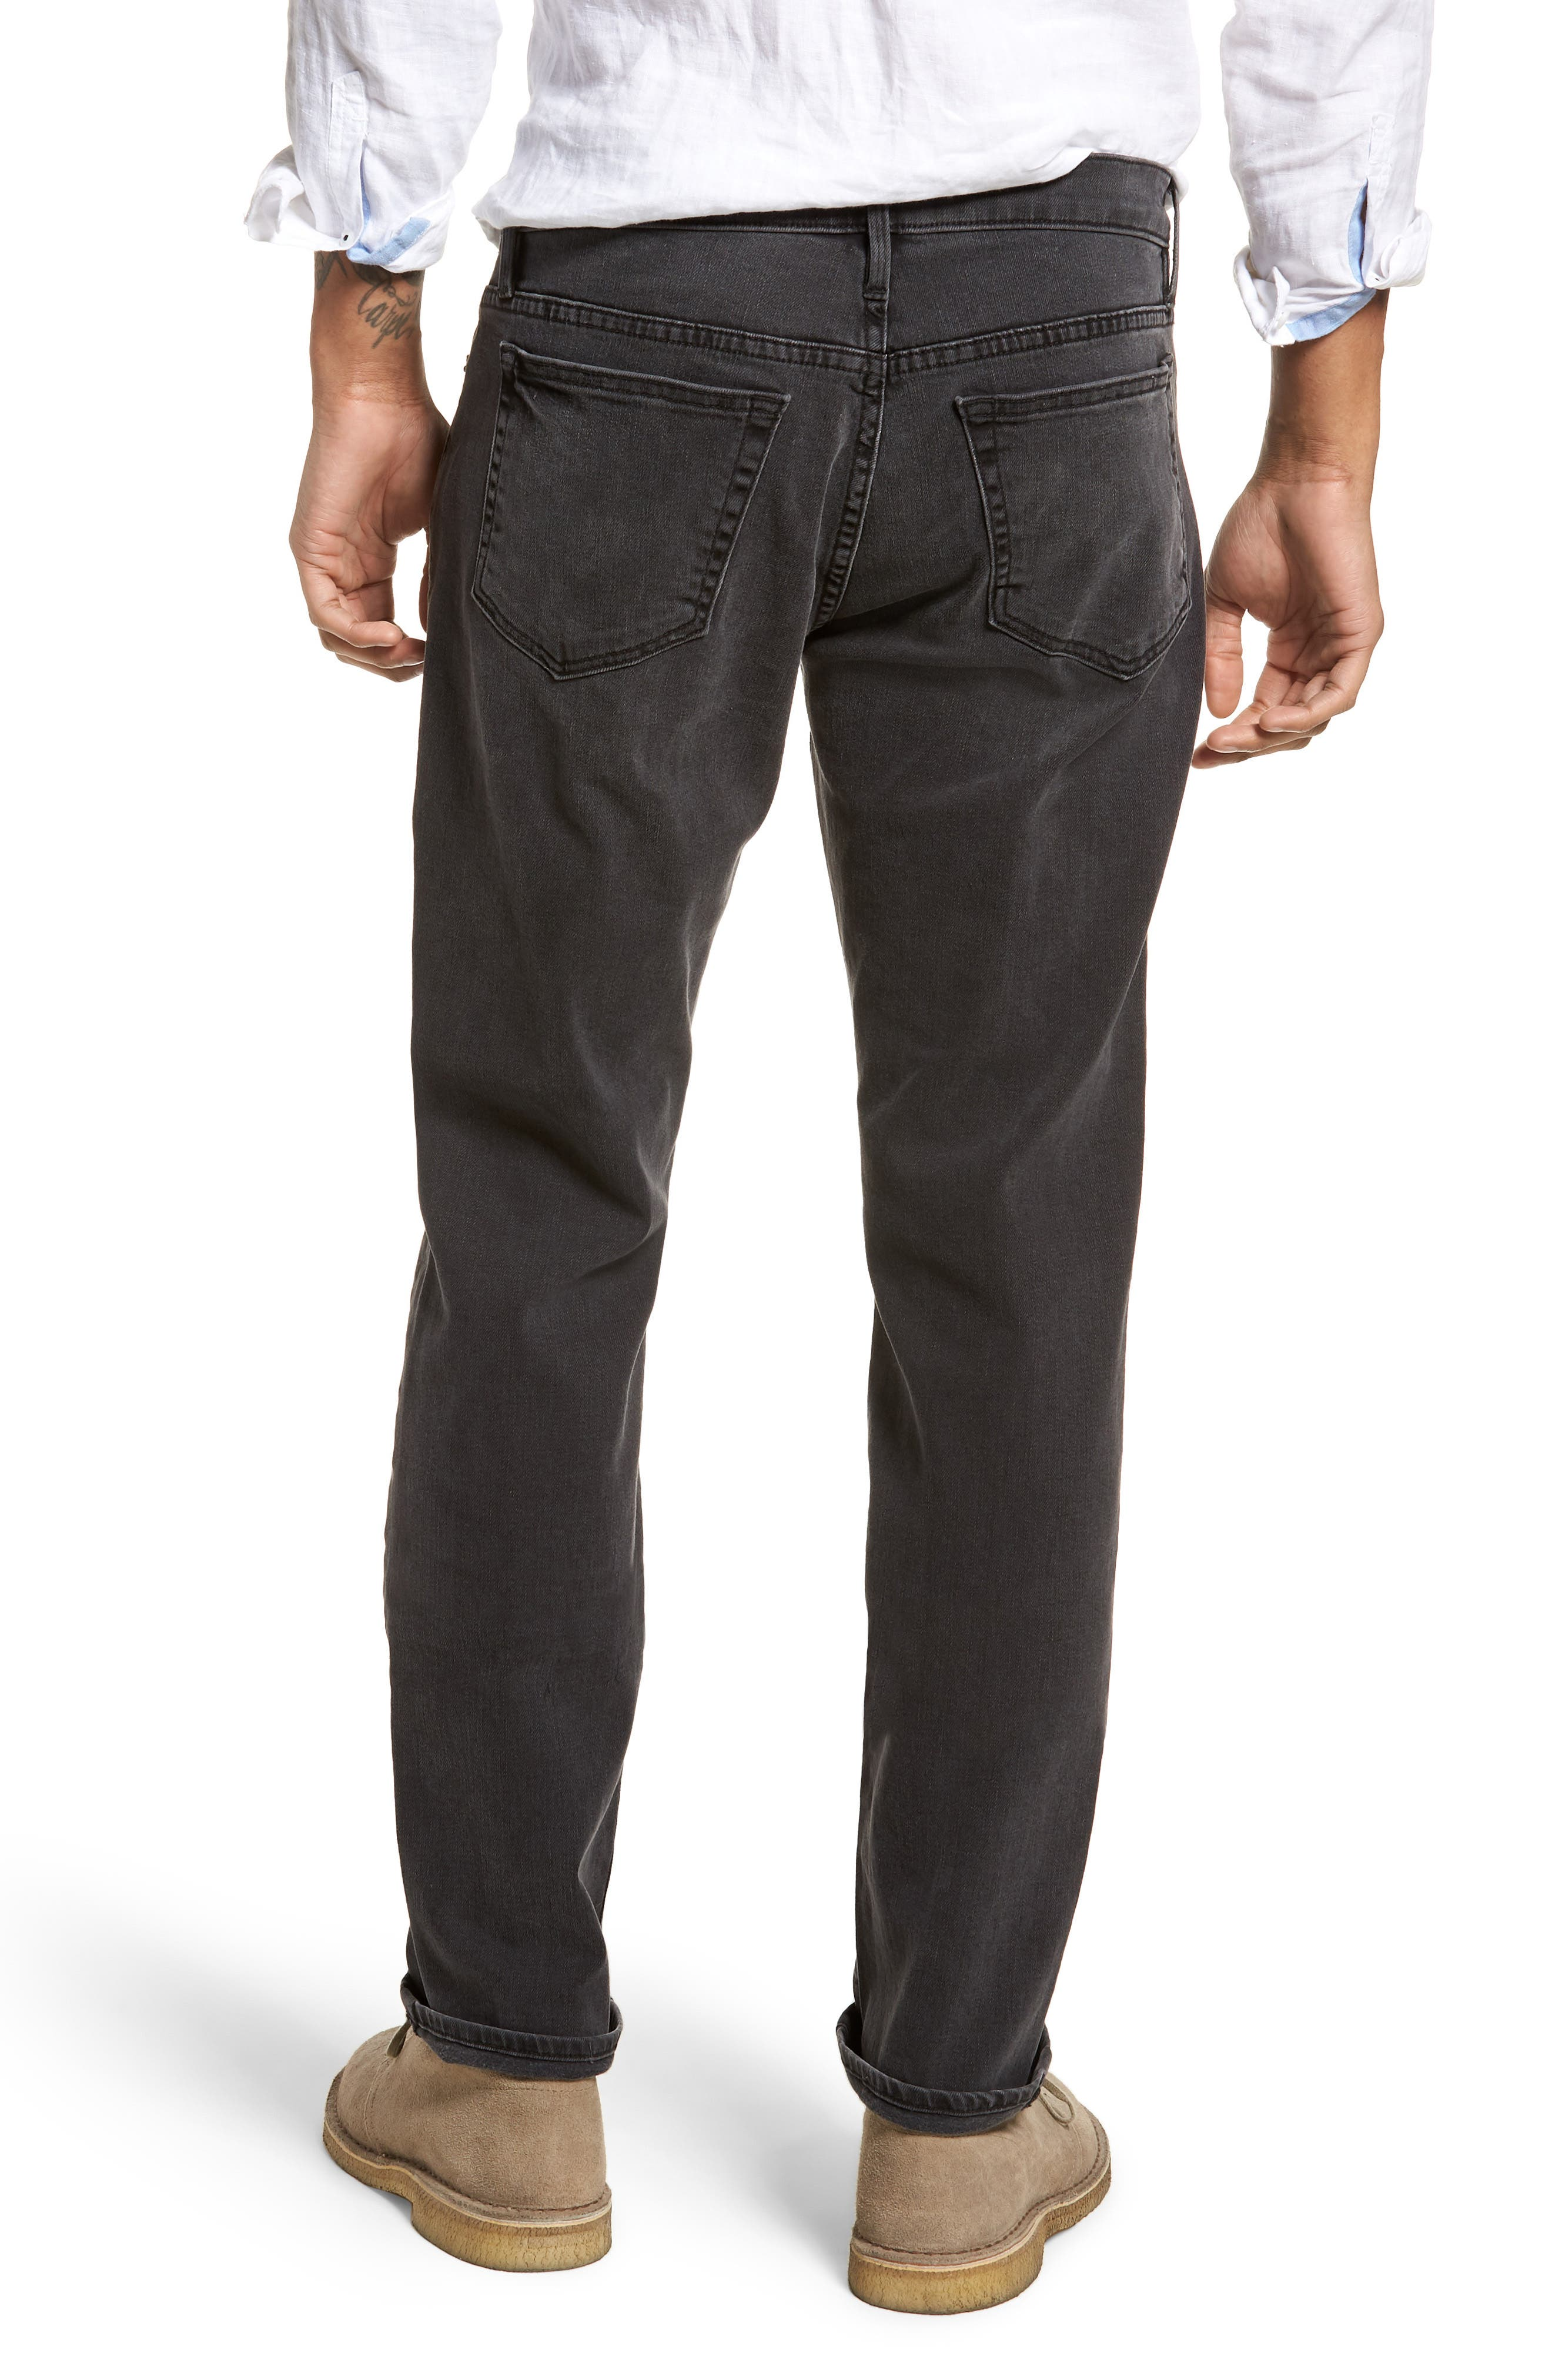 L'Homme Straight Leg Jeans,                             Alternate thumbnail 2, color,                             FADE TO GREY